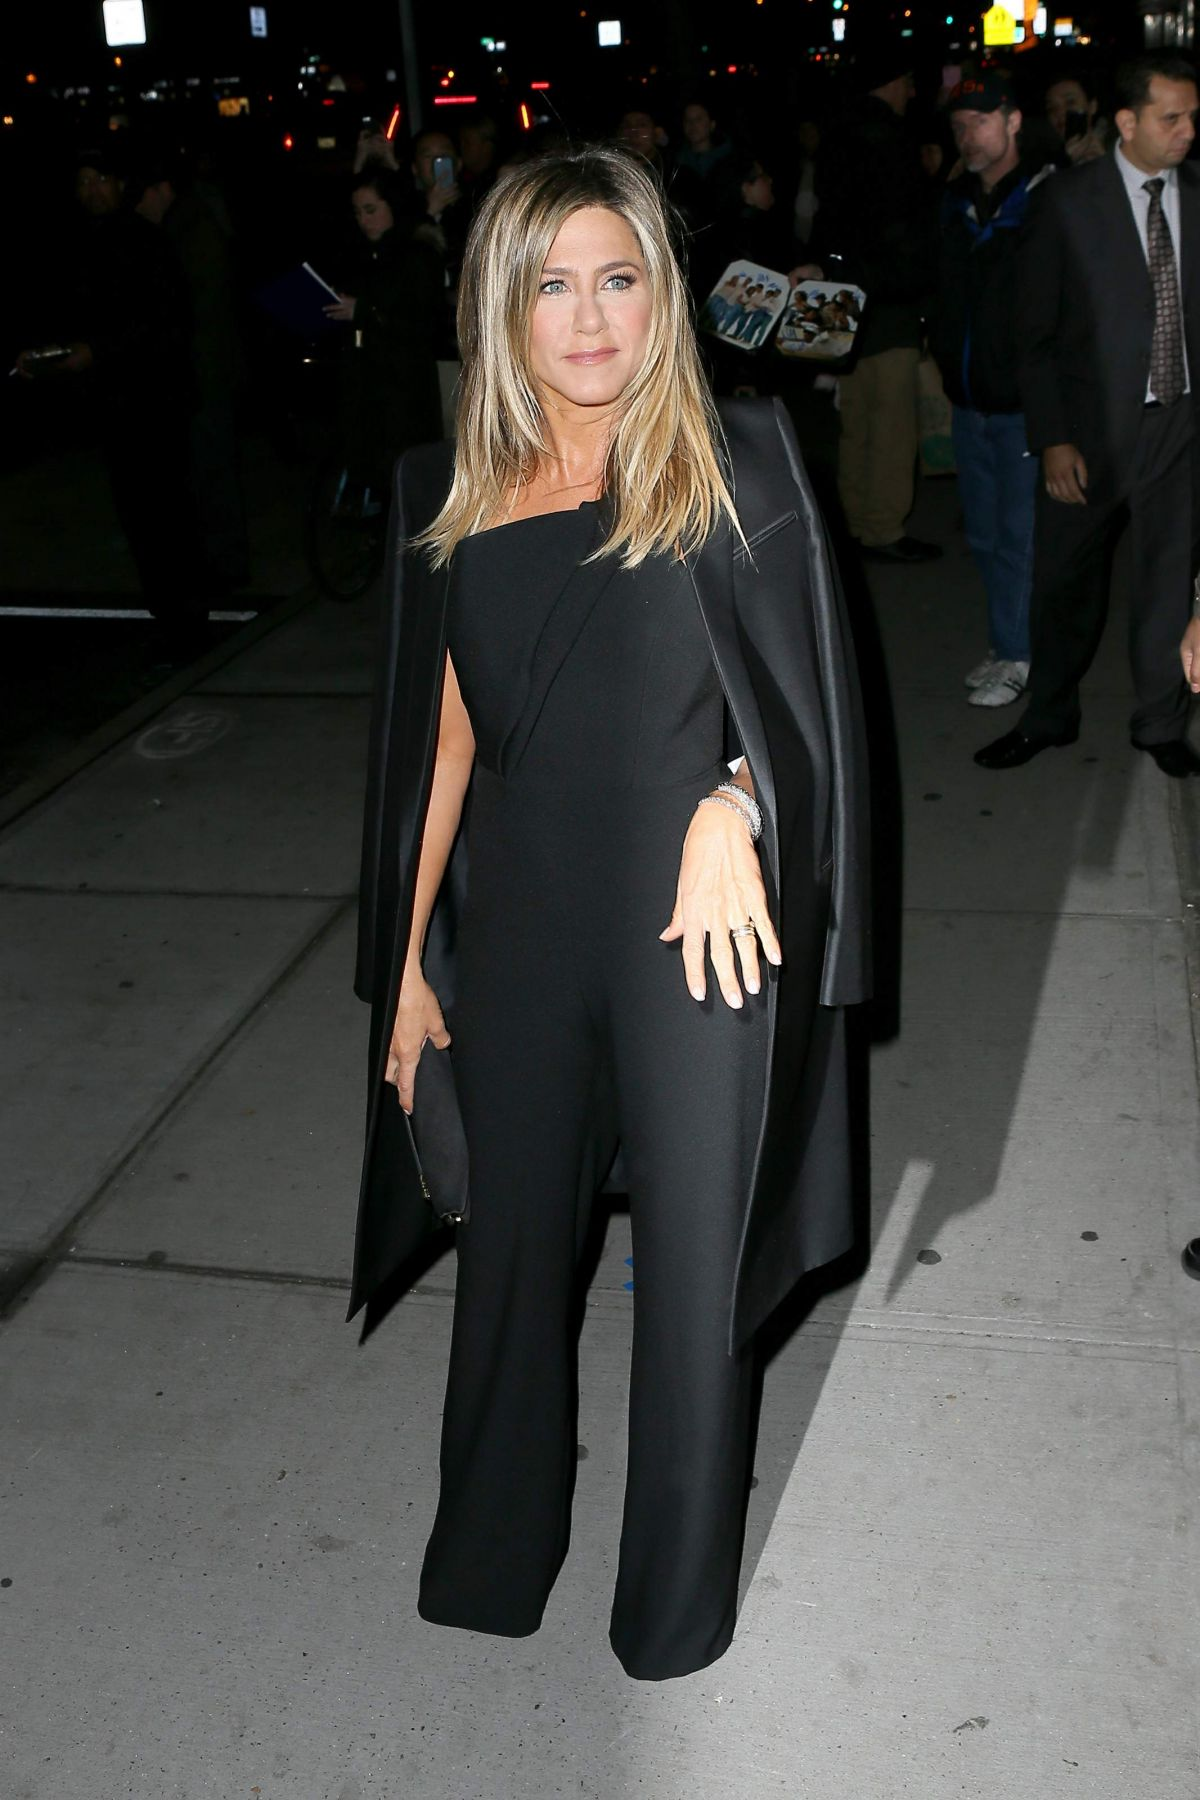 Jennifer Aniston Seen at 'Office Christmas Party' at Landmark Sunshine Cinema, NY   jennifer-aniston-seen-at-office-christmas-party-at-landmark-sunshine-cinema-ny_4